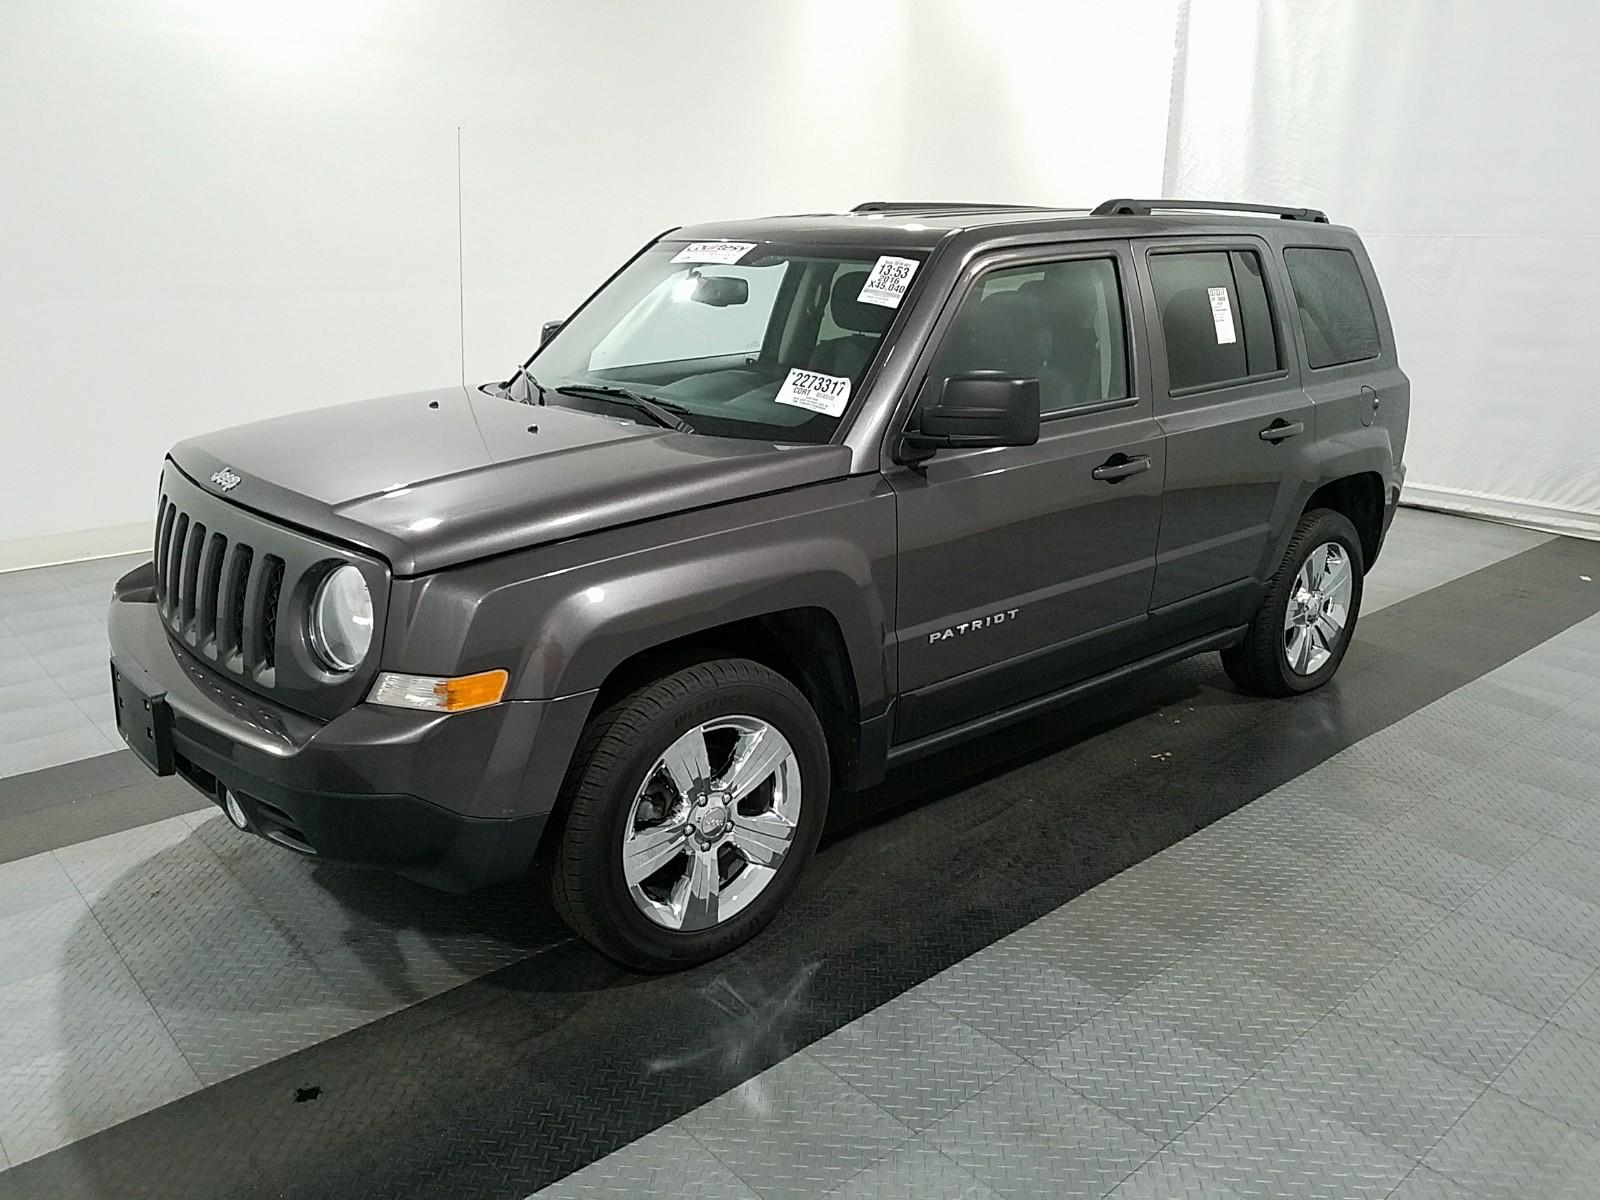 2016 jeep patriot fwd 4c latitude benzoauto. Black Bedroom Furniture Sets. Home Design Ideas